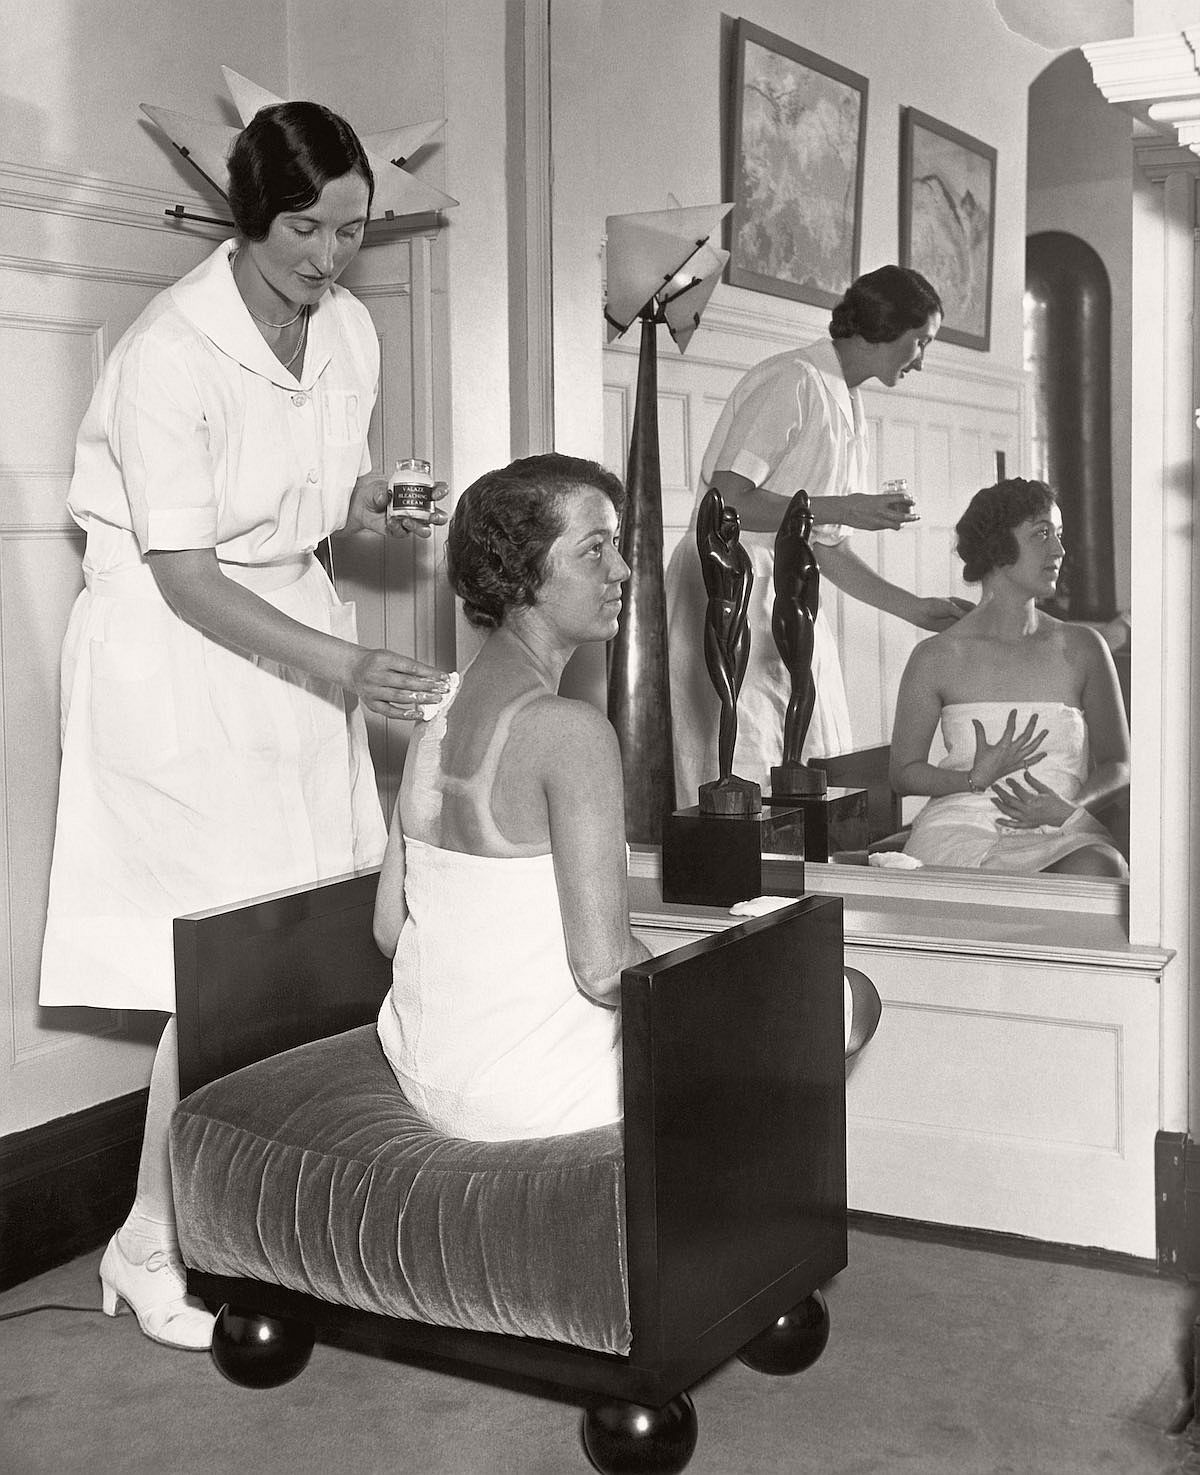 30 Sep 1929, Chicago, Illinois, USA --- In the fashionable Gold Coast salon of Helena Rubenstein, Carolyn Lang applies lotions to Billie Gloss' suntanned back, bleaching it down so that Miss Gloss will be the same pale shade all over. --- Image by © Underwood & Underwood/Corbis